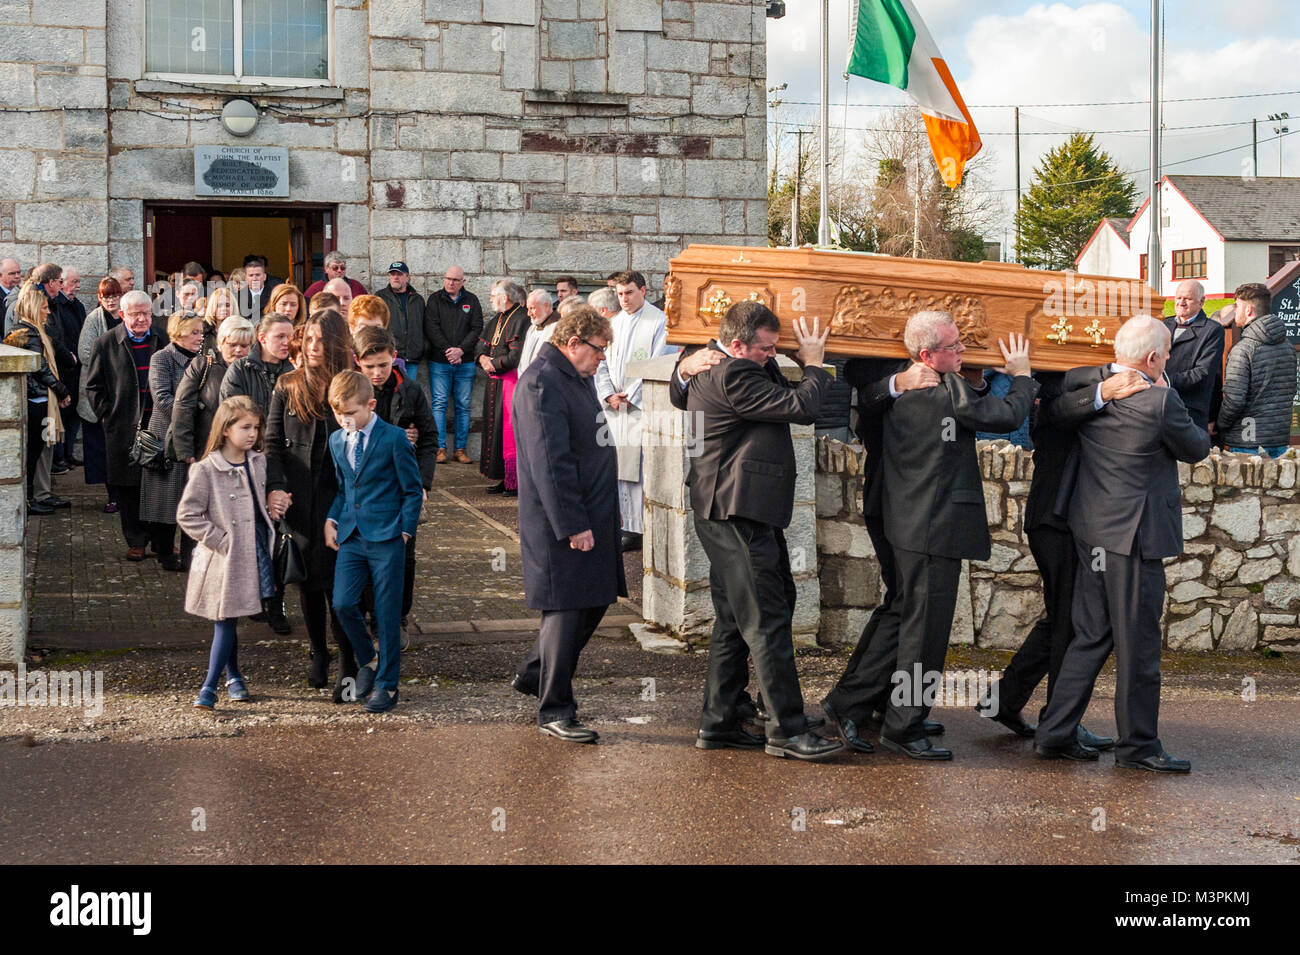 ovens-ireland-12th-feb-2018-the-funeral-of-footballer-liam-miller-M3PKMJ.jpg